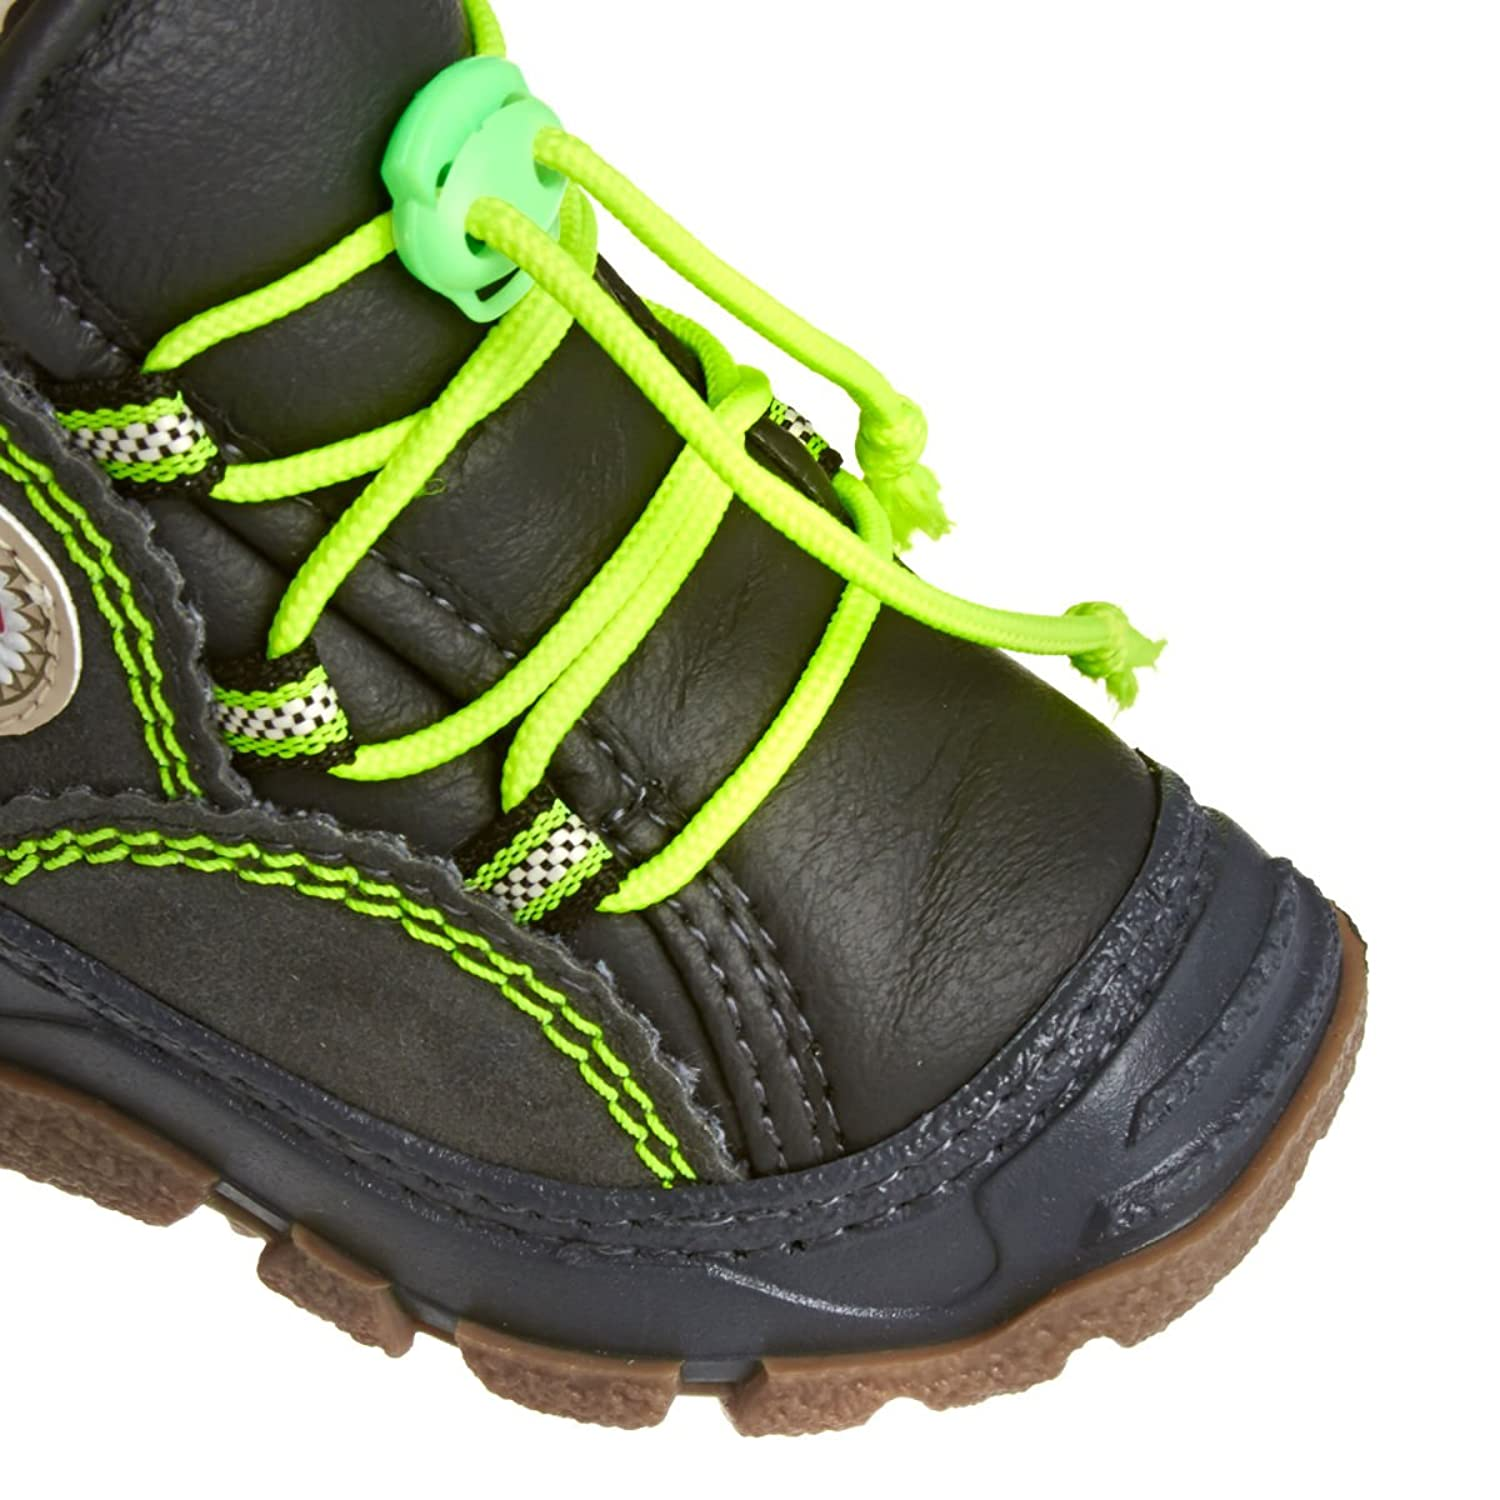 Olang Boots - Olang Panda Boots - Anthracite vAl10hkE1